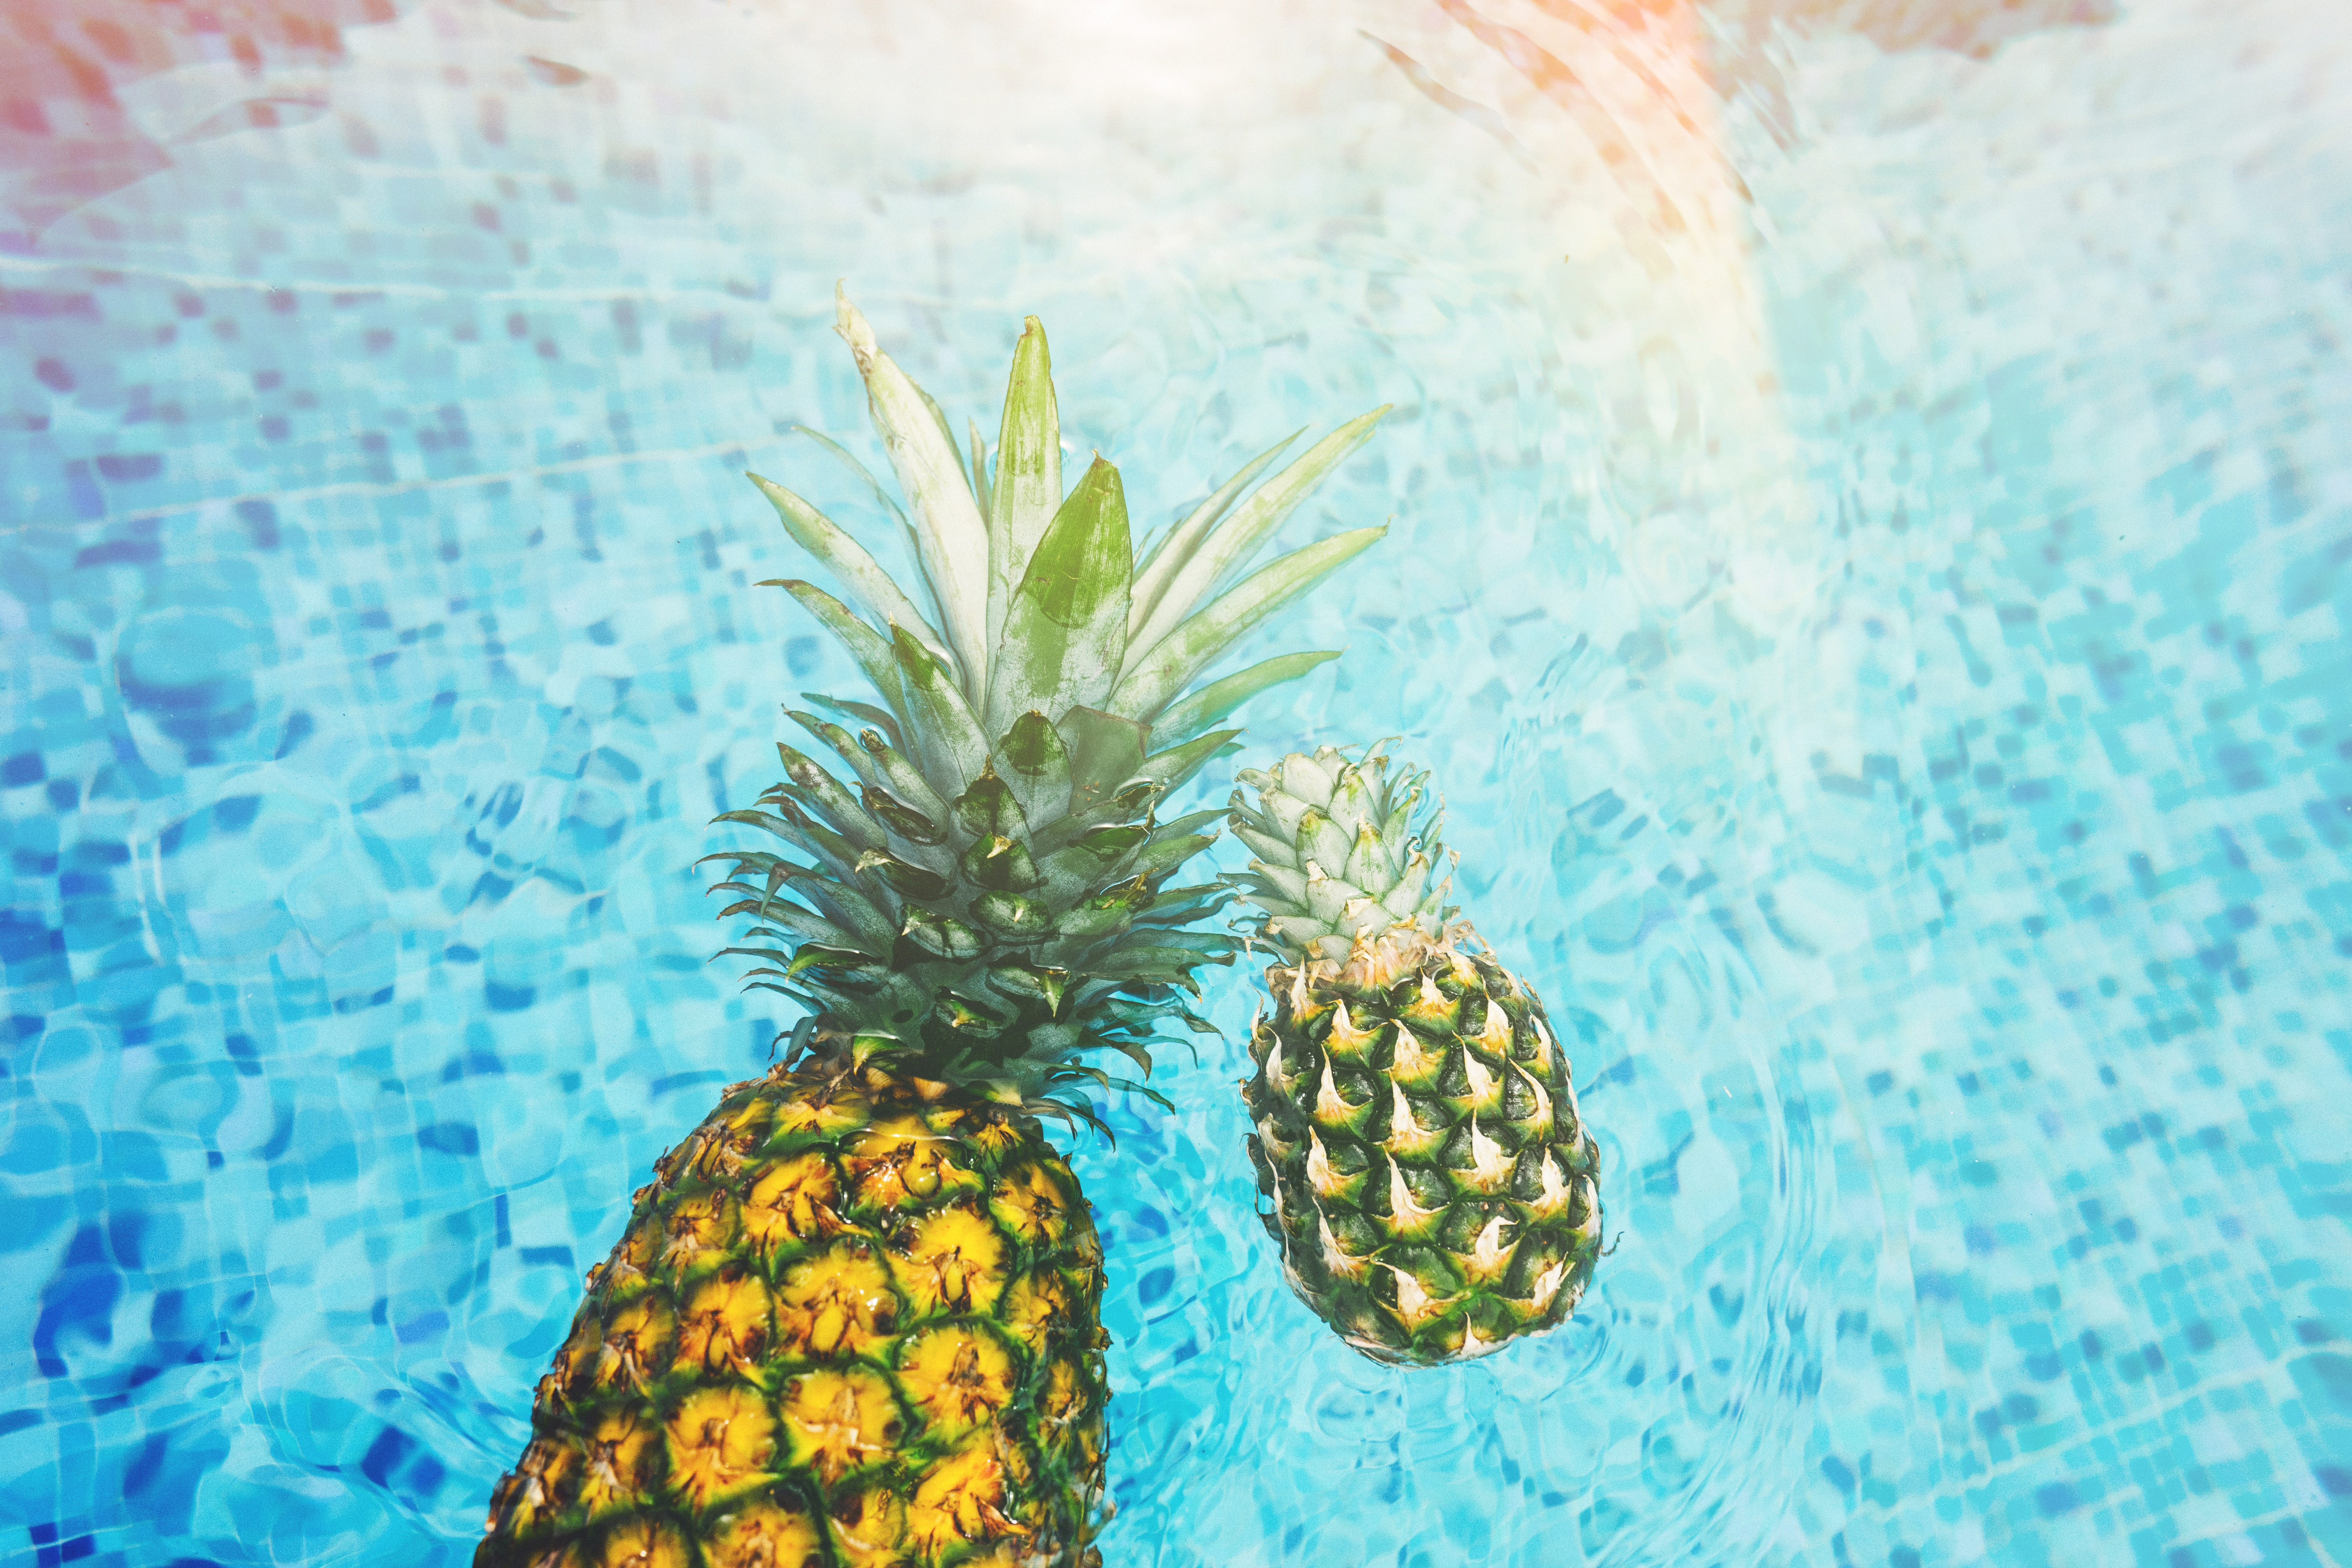 Two pineapples floating in a pool